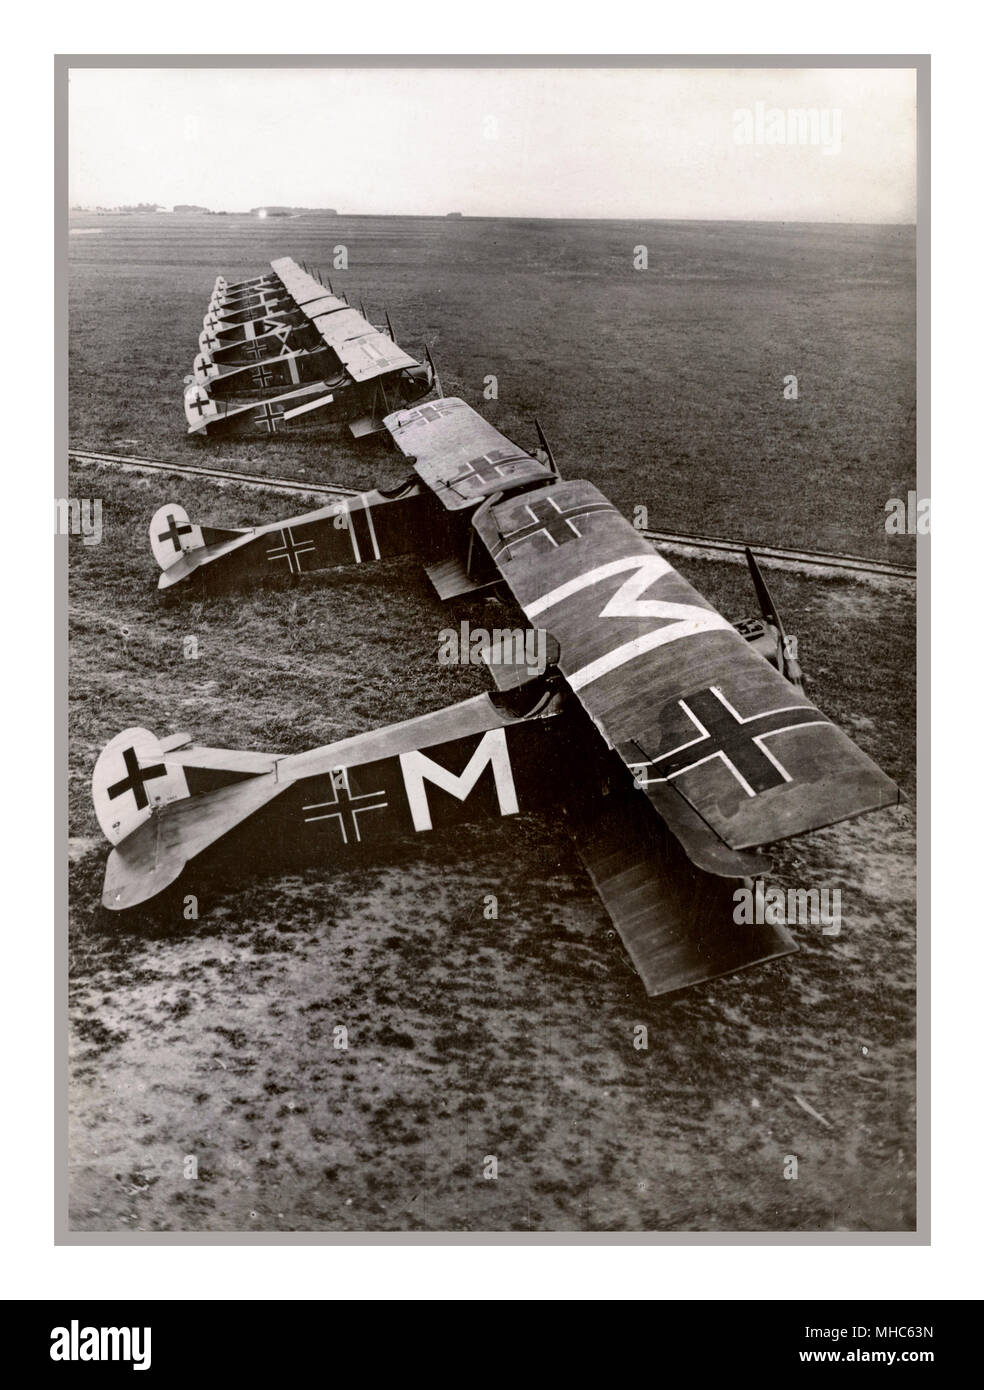 "WW1 Ten German Fokker D.VII aircraft of Jasta 72 at Bergnicourt, France, in July 1918. The plane marked with an ""M"" belonged to Oberleutnant Karl Menckhoff . On 23 April 1918, he was awarded Germany's highest decoration for valor, the Pour le Mérite, his victory total having reached 25.Carl Menckhoff (14 April 1883 – 11 January 1949) was a German First World War fighter ace, credited with 39 confirmed victories. He was one of the oldest pilots in the Imperial German Air Service, he transferred from infantry service to aviation as a non-commissioned officer Stock Photo"